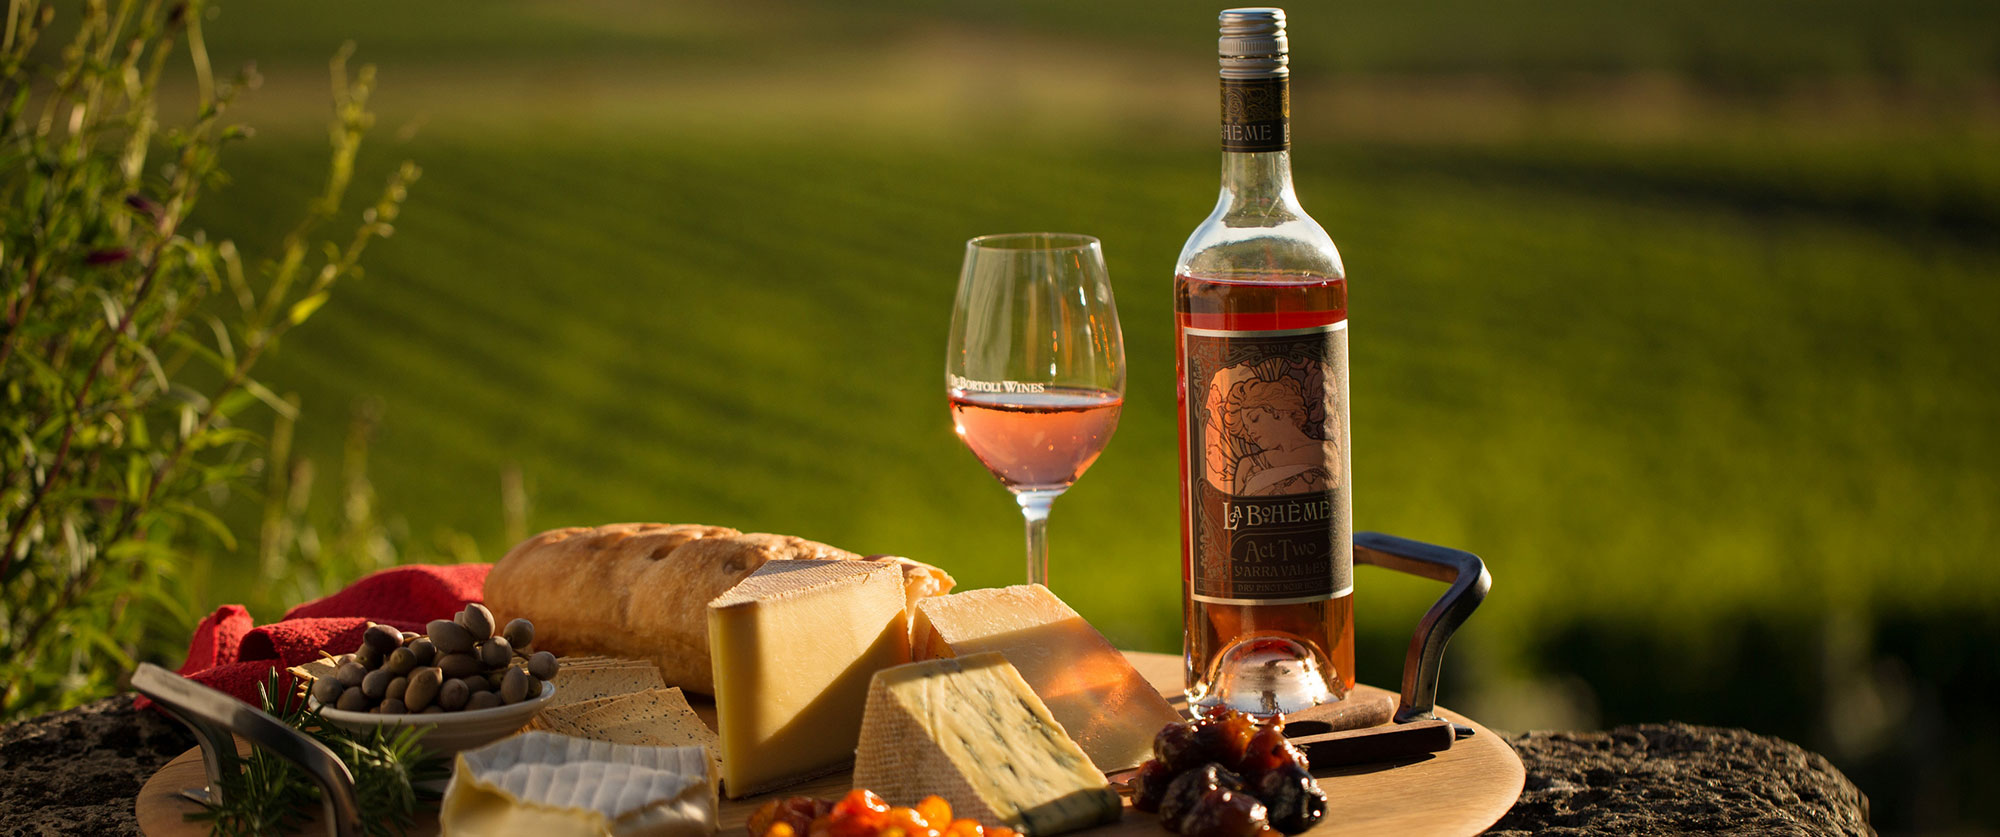 food and wine travel packages - travel specialists - handcrafted - dream vacation